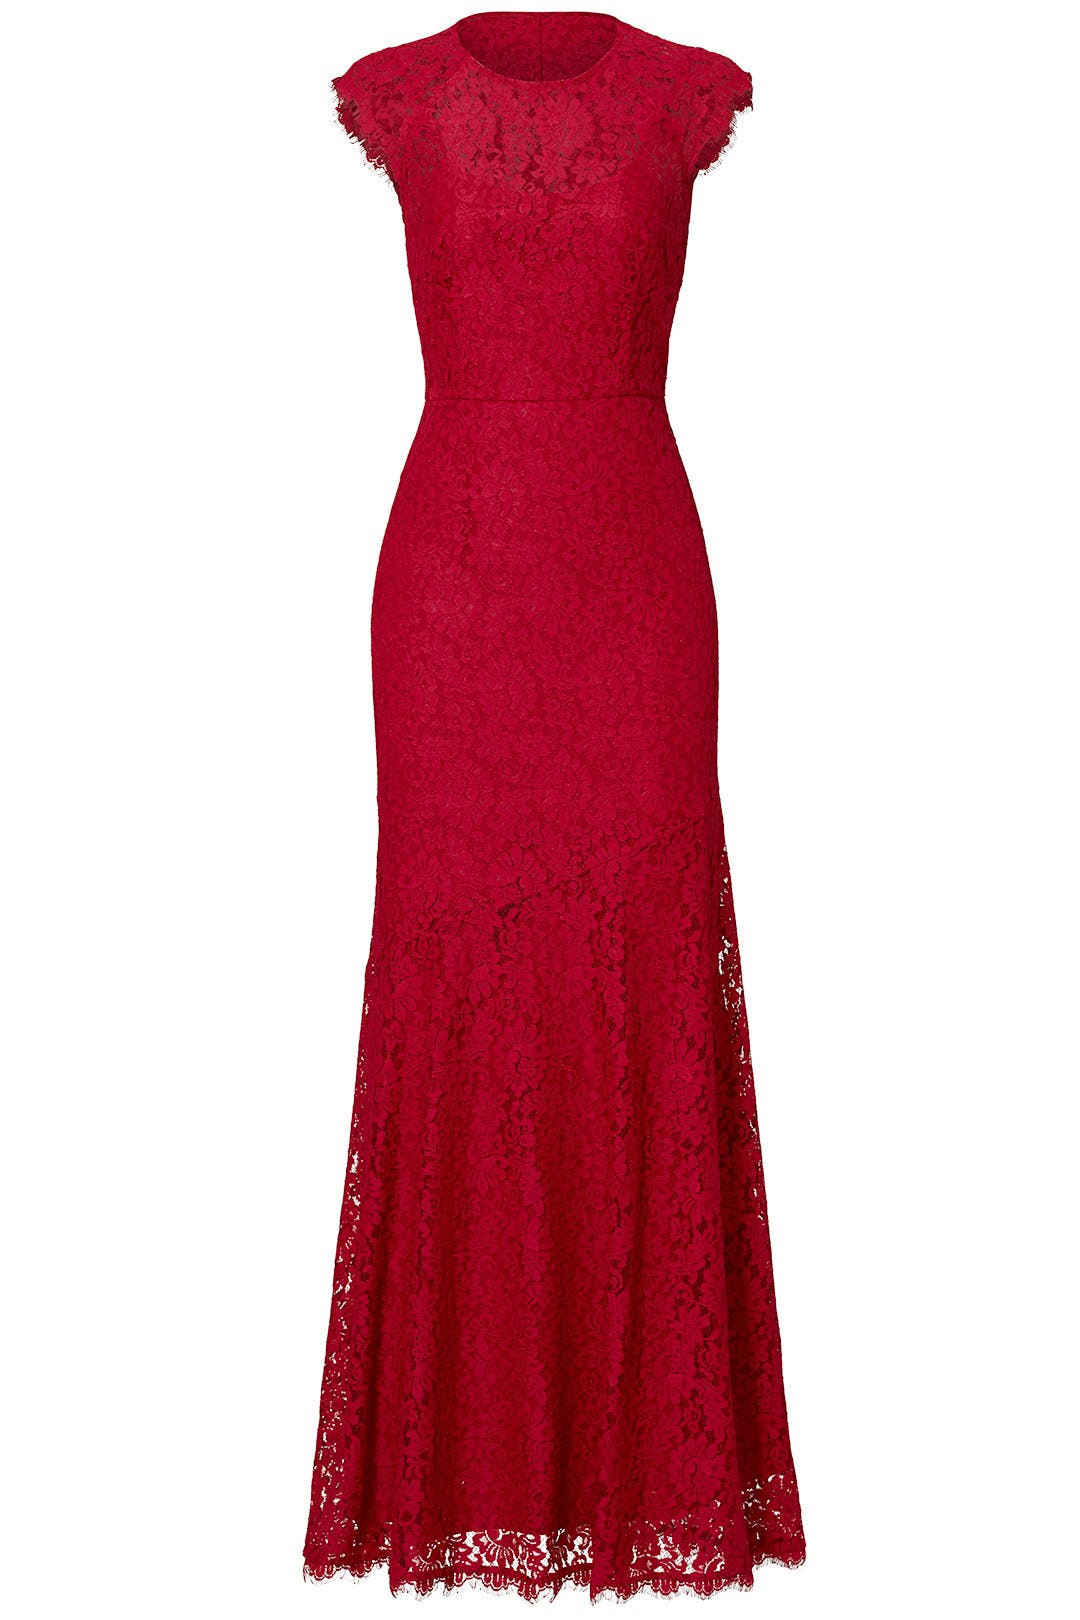 Red Rose Cap Sleeve Gown by Shoshanna for $70 - $90 | Rent the Runway